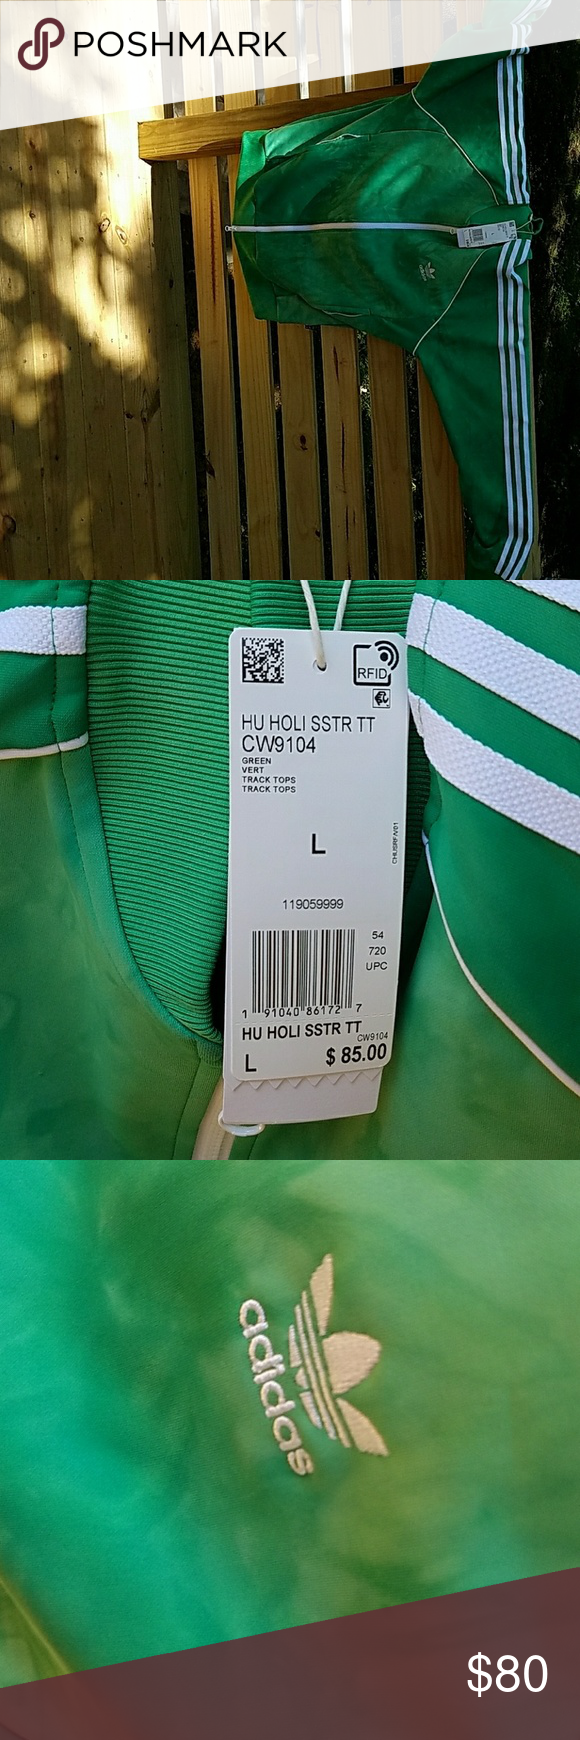 4bba8a253a371 Adidas Pharrell Williams Hu Holi SSTR Track Jacket BNWT! Straight from  Nordstrom! 2018 collection